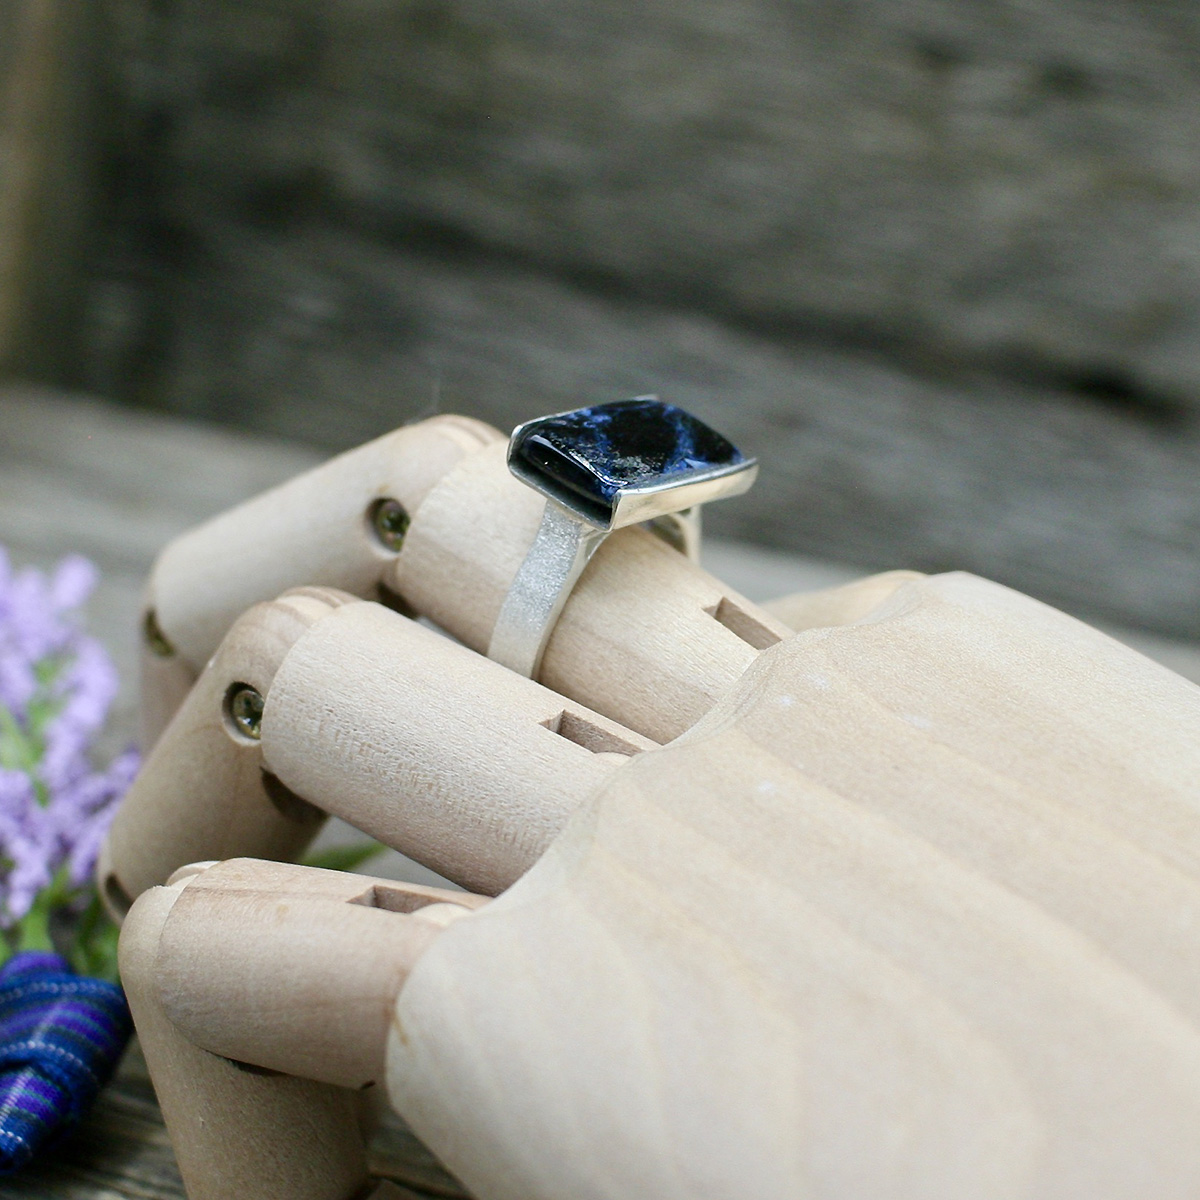 Blue Tempest Stone Ring on hand